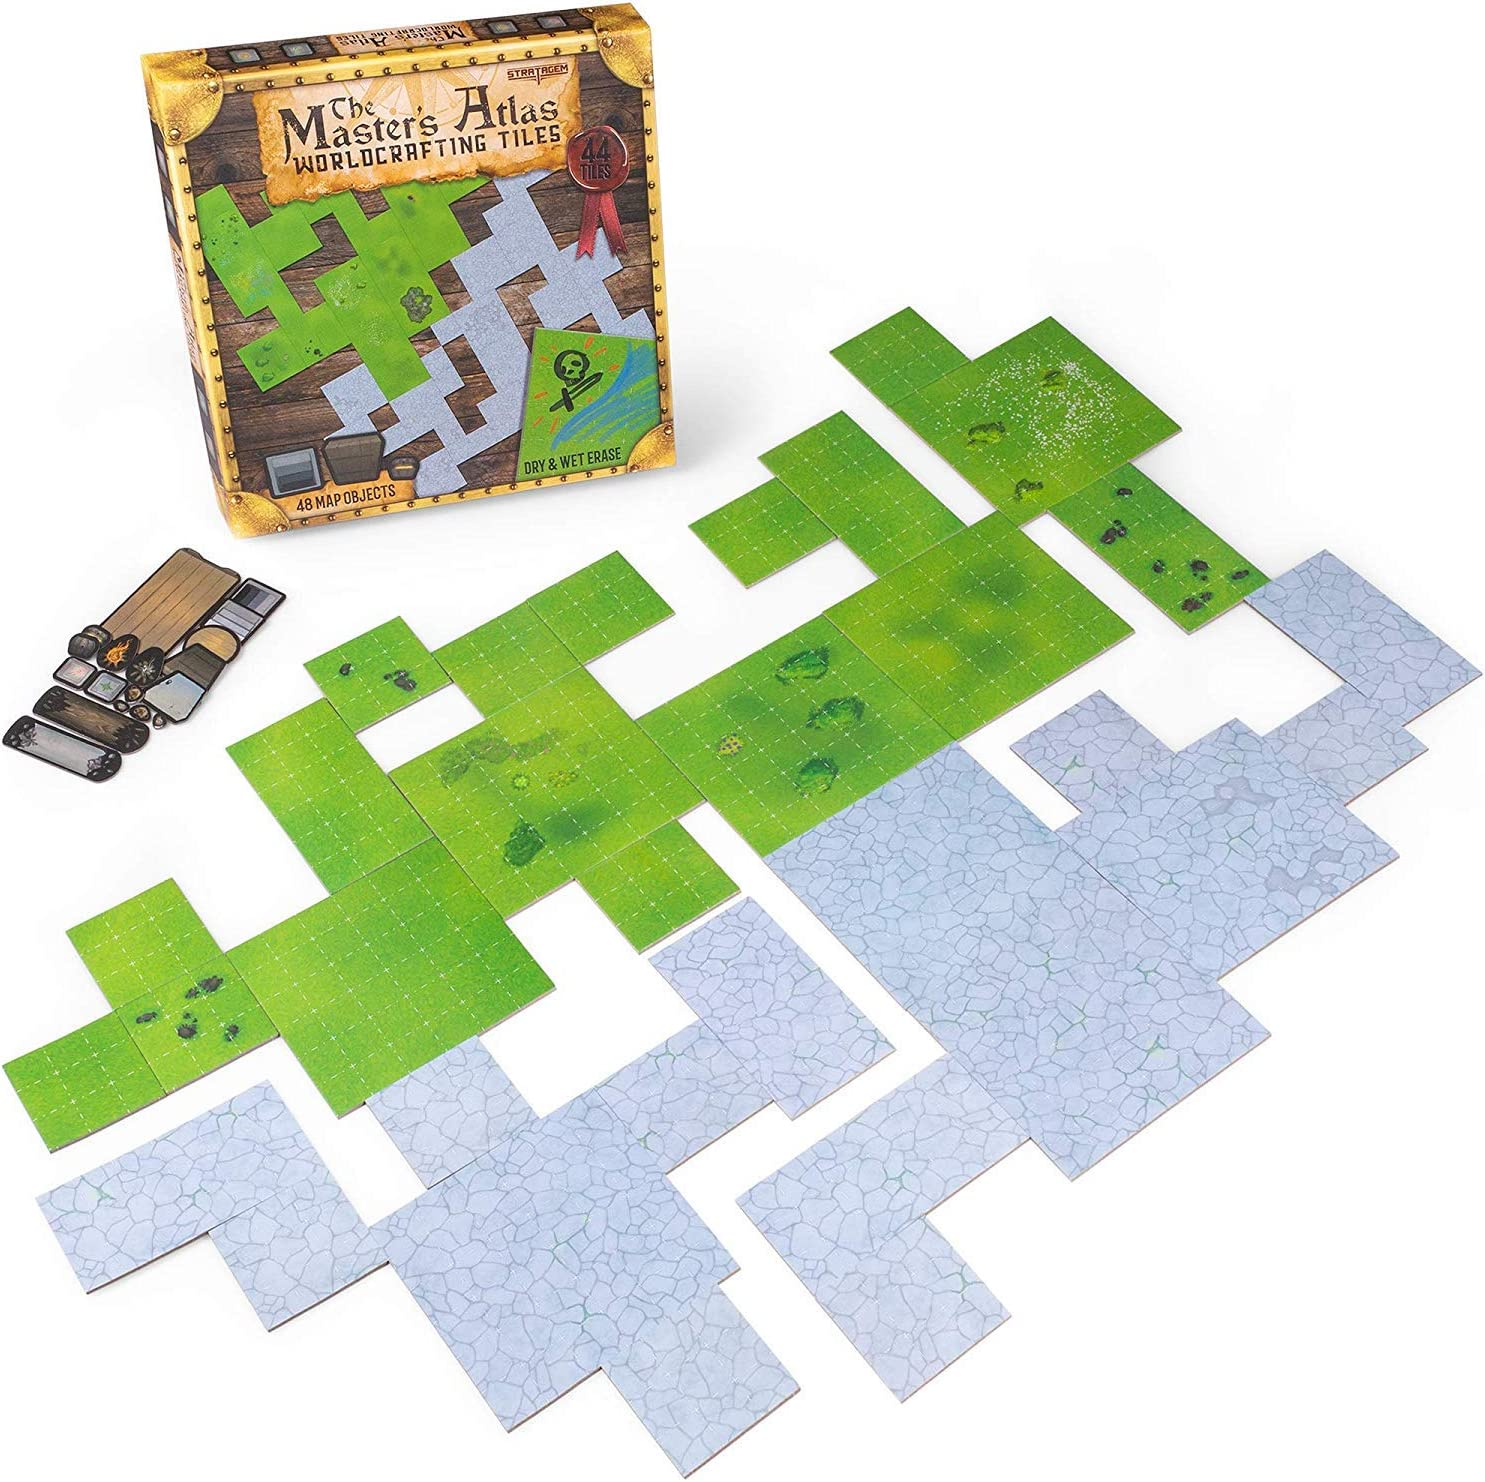 The Master's Atlas (Grass/Stone) | 44 Reversible Dry & Wet Erase Map Grid Tiles | 48 Dungeon Object Tokens: Treasure, Doors, Stairs and More | RPG Tabletop Role Playing Mats for Fantasy Gaming